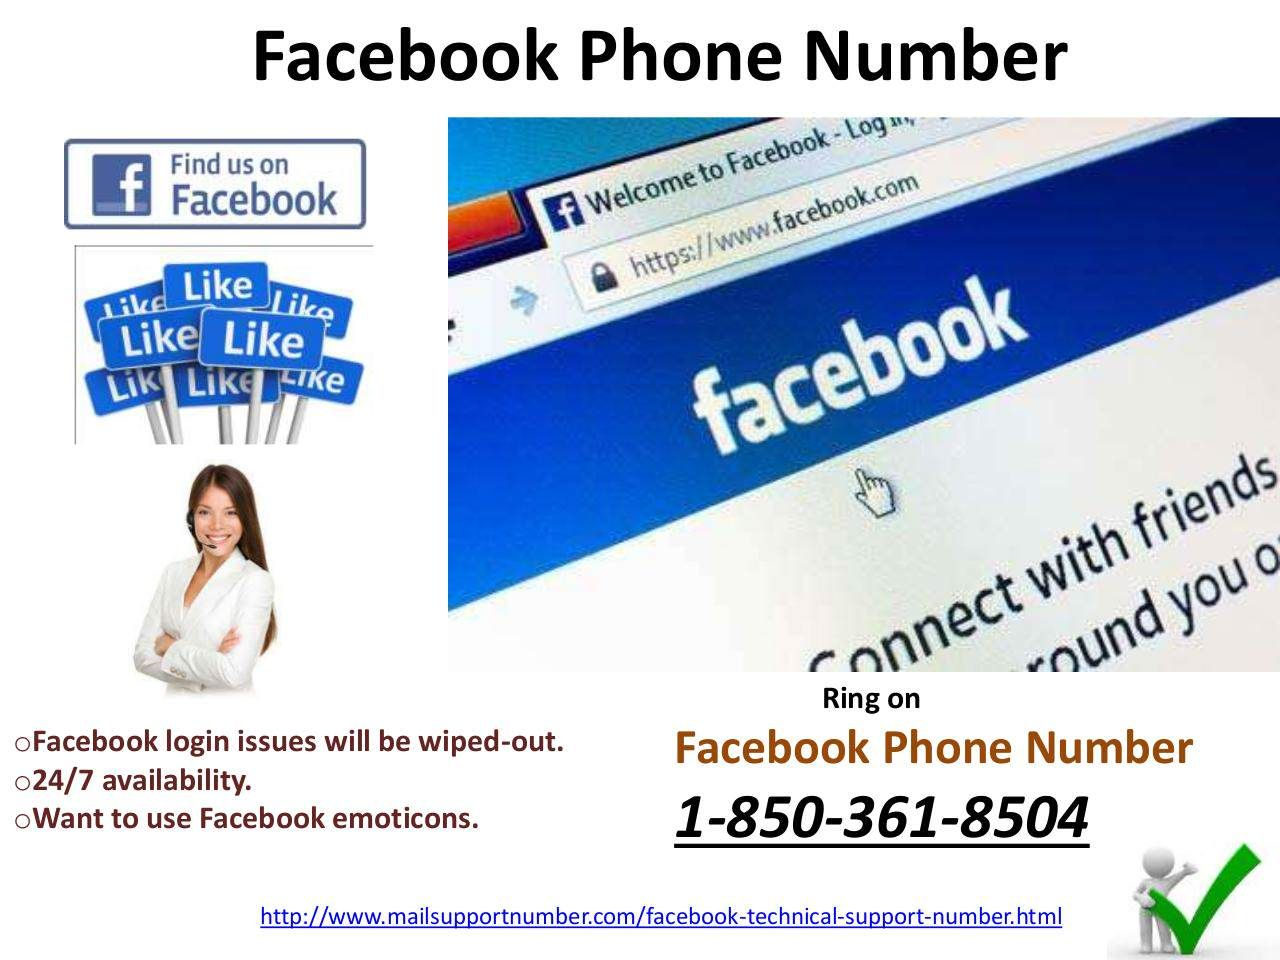 "why is facebook phone number 1-850-361-8504 so special?""take a book"